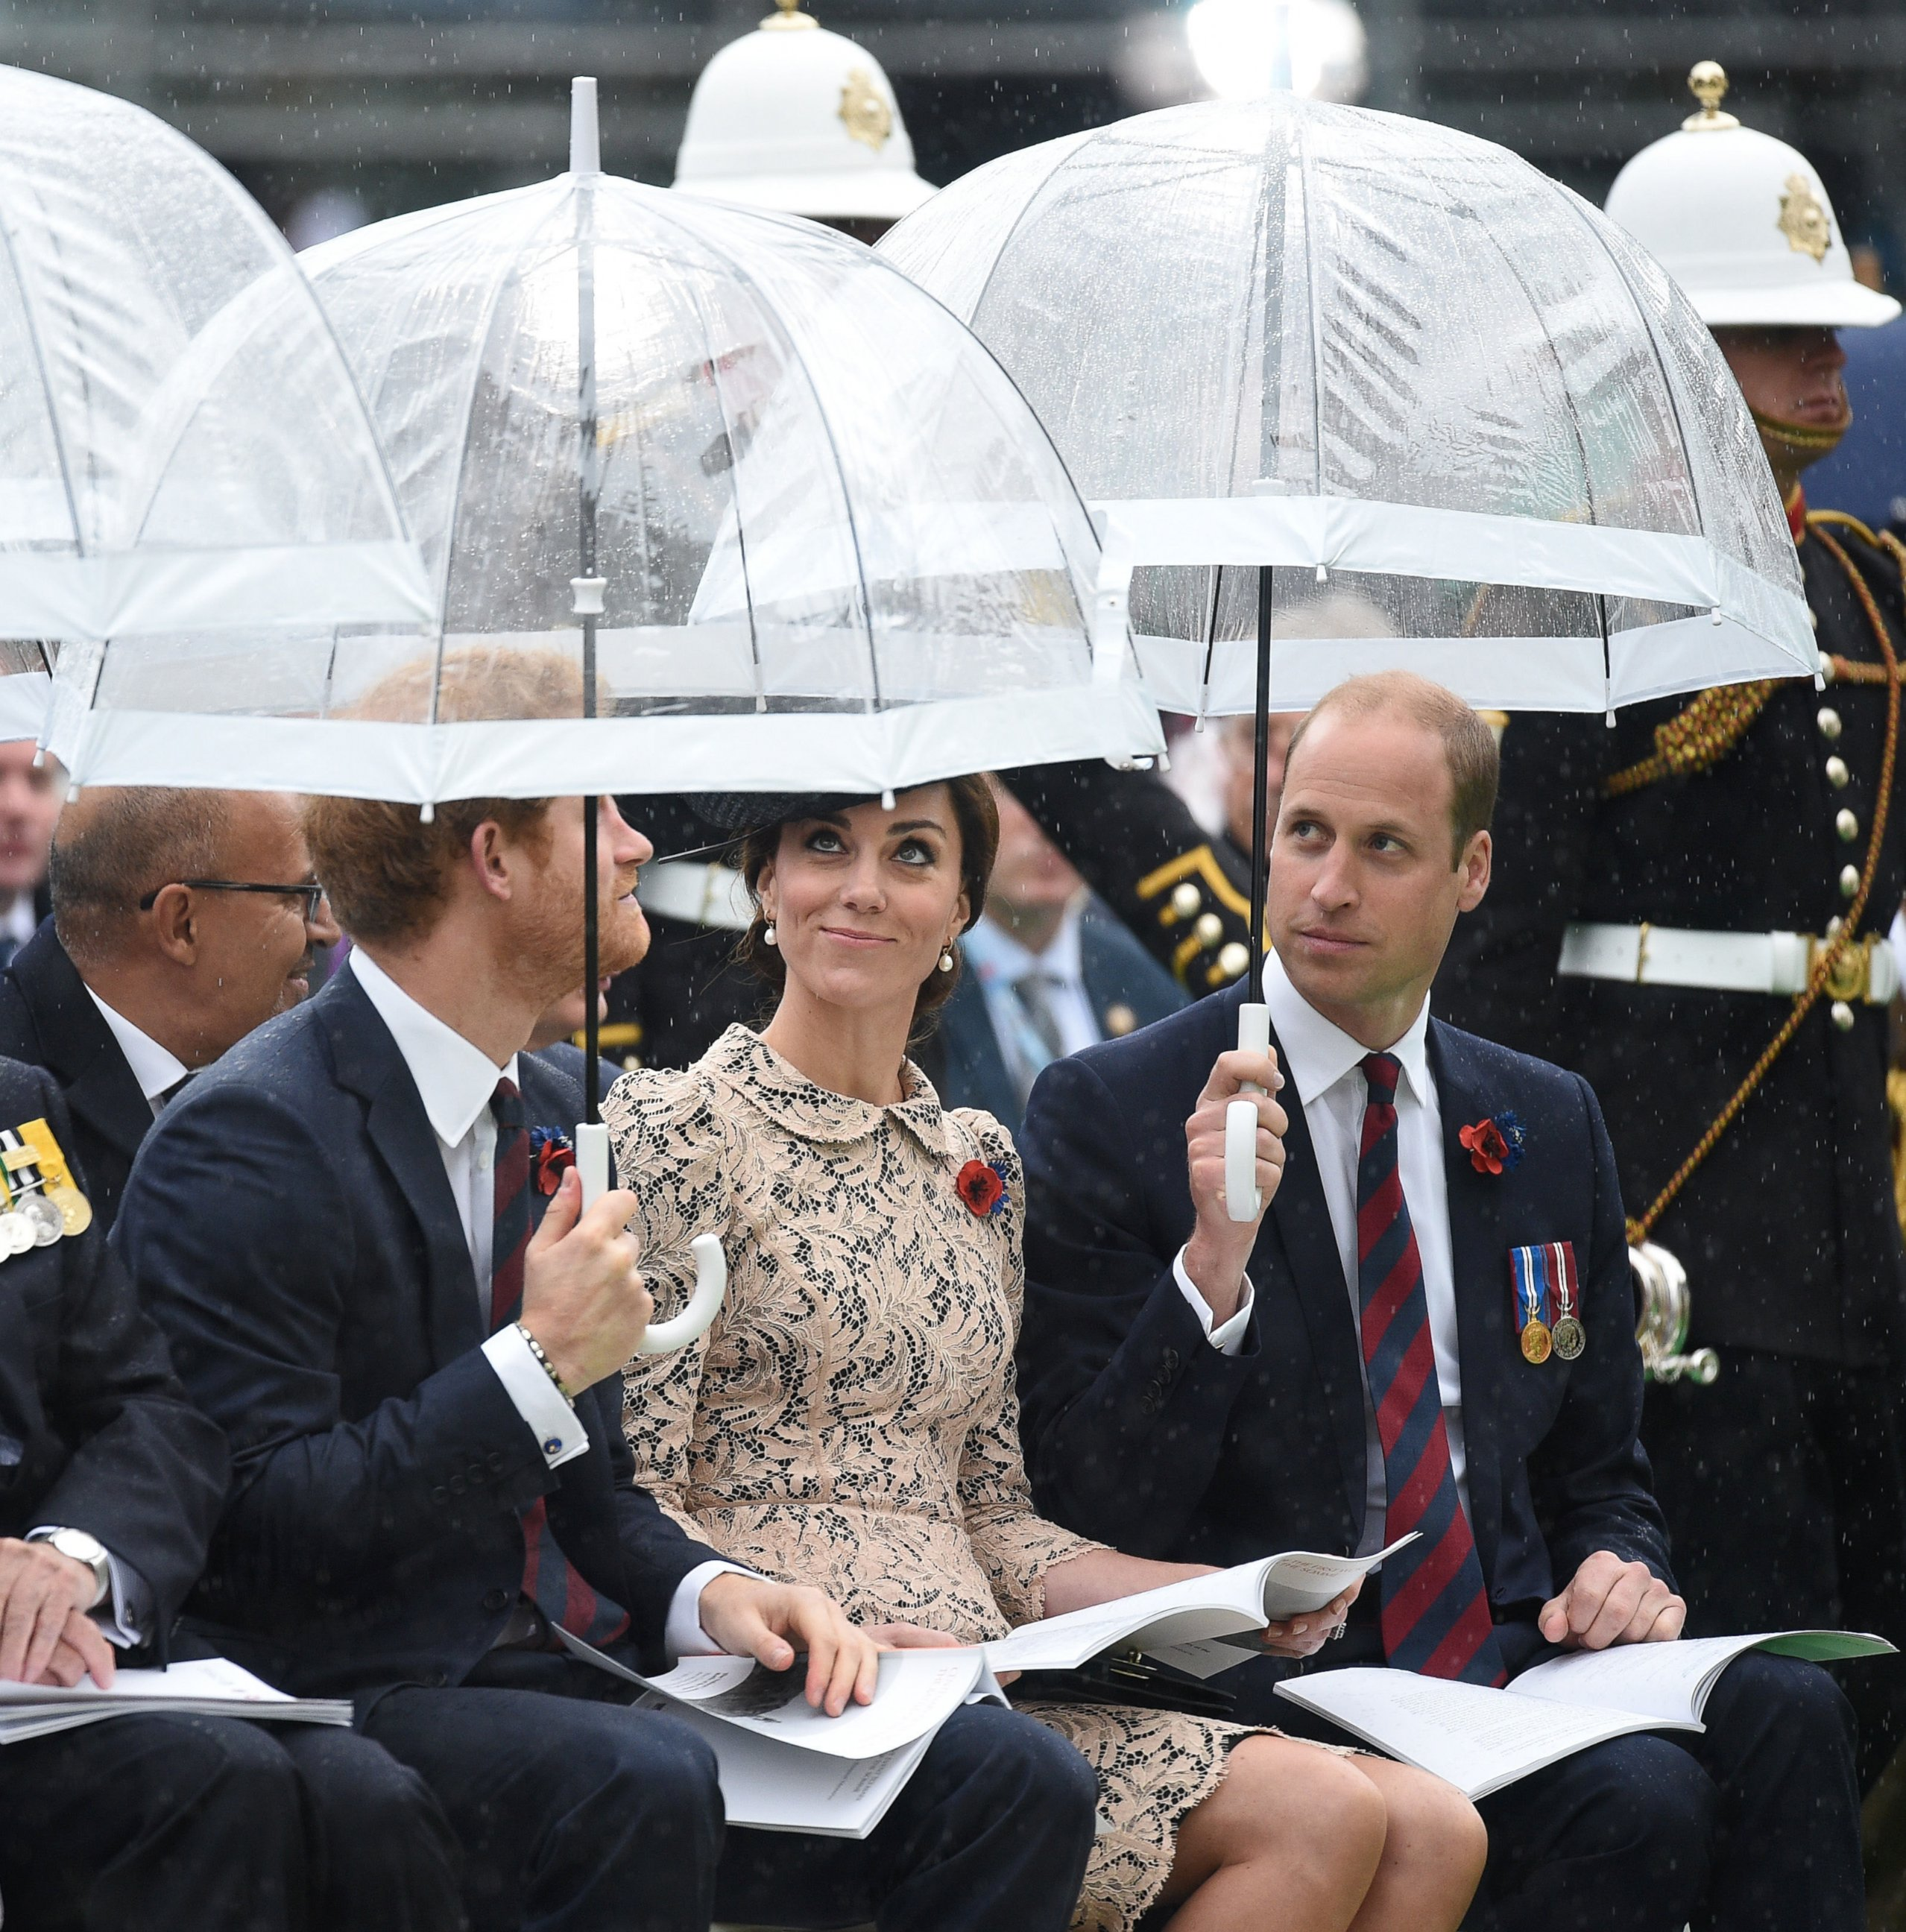 Topic Prince Harry: Prince Harry Photos And Images